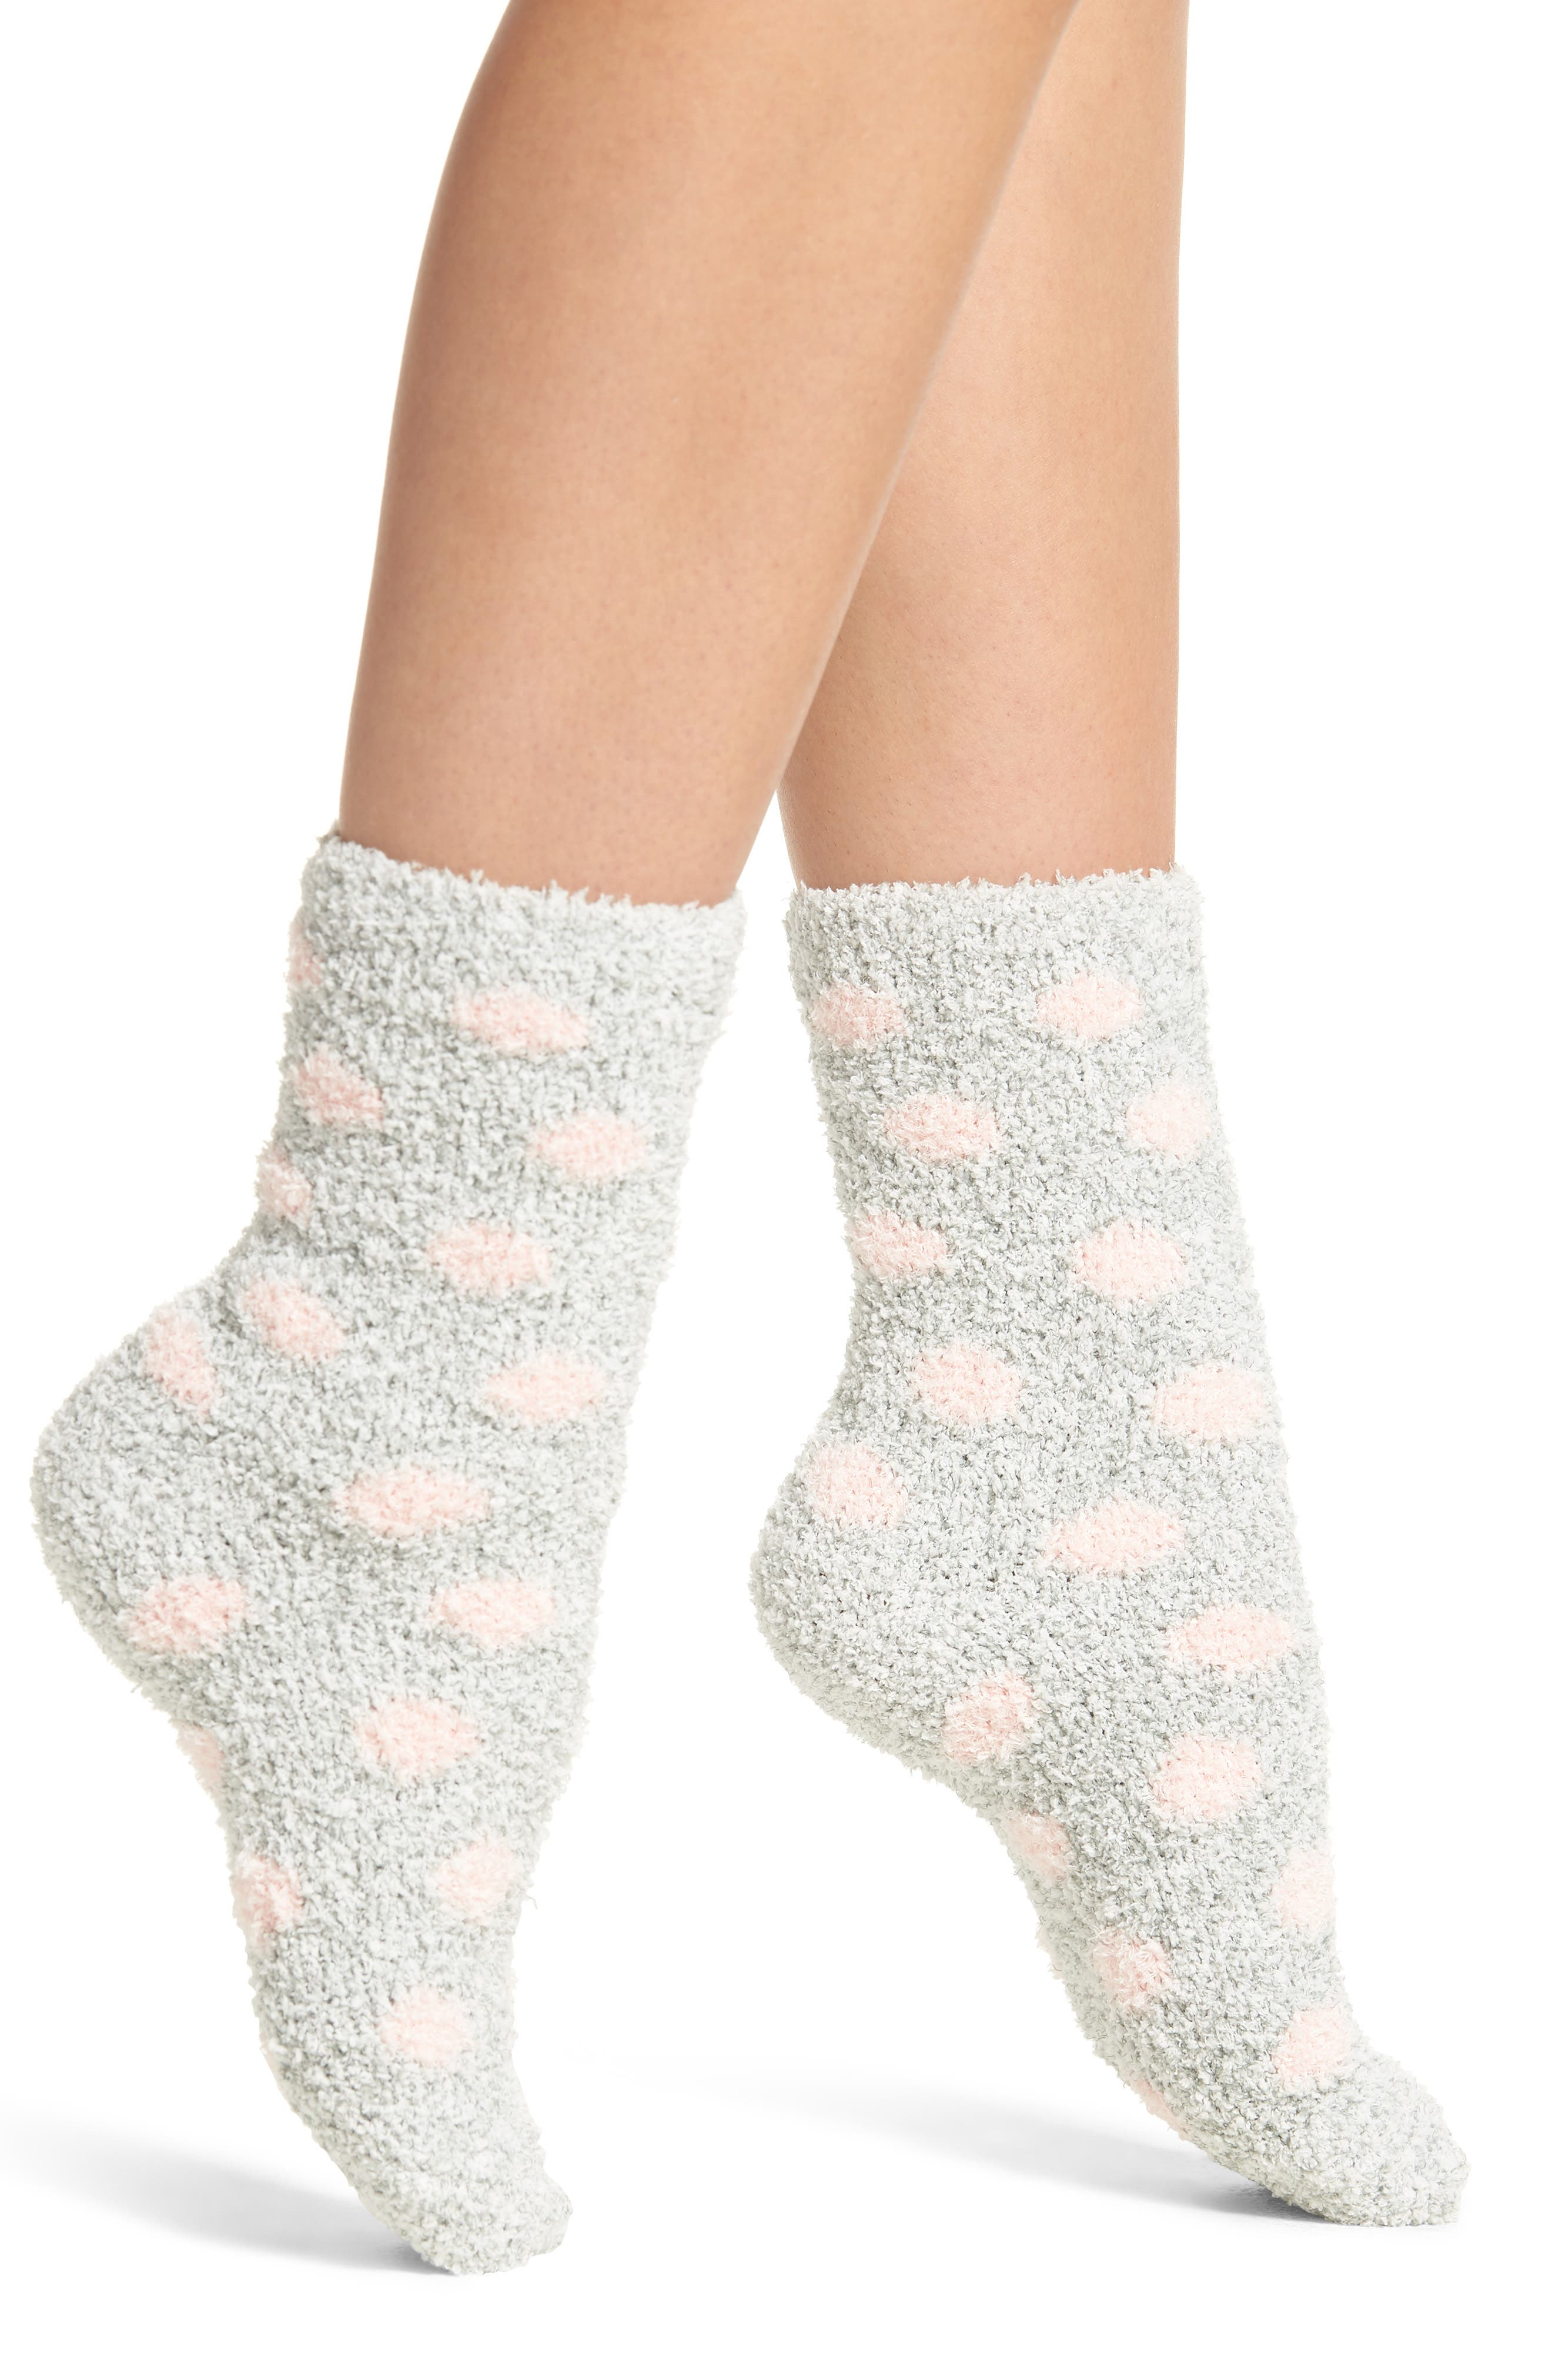 Butter Crew Socks,                         Main,                         color, GREY W/ LIGHT PINK DOTS